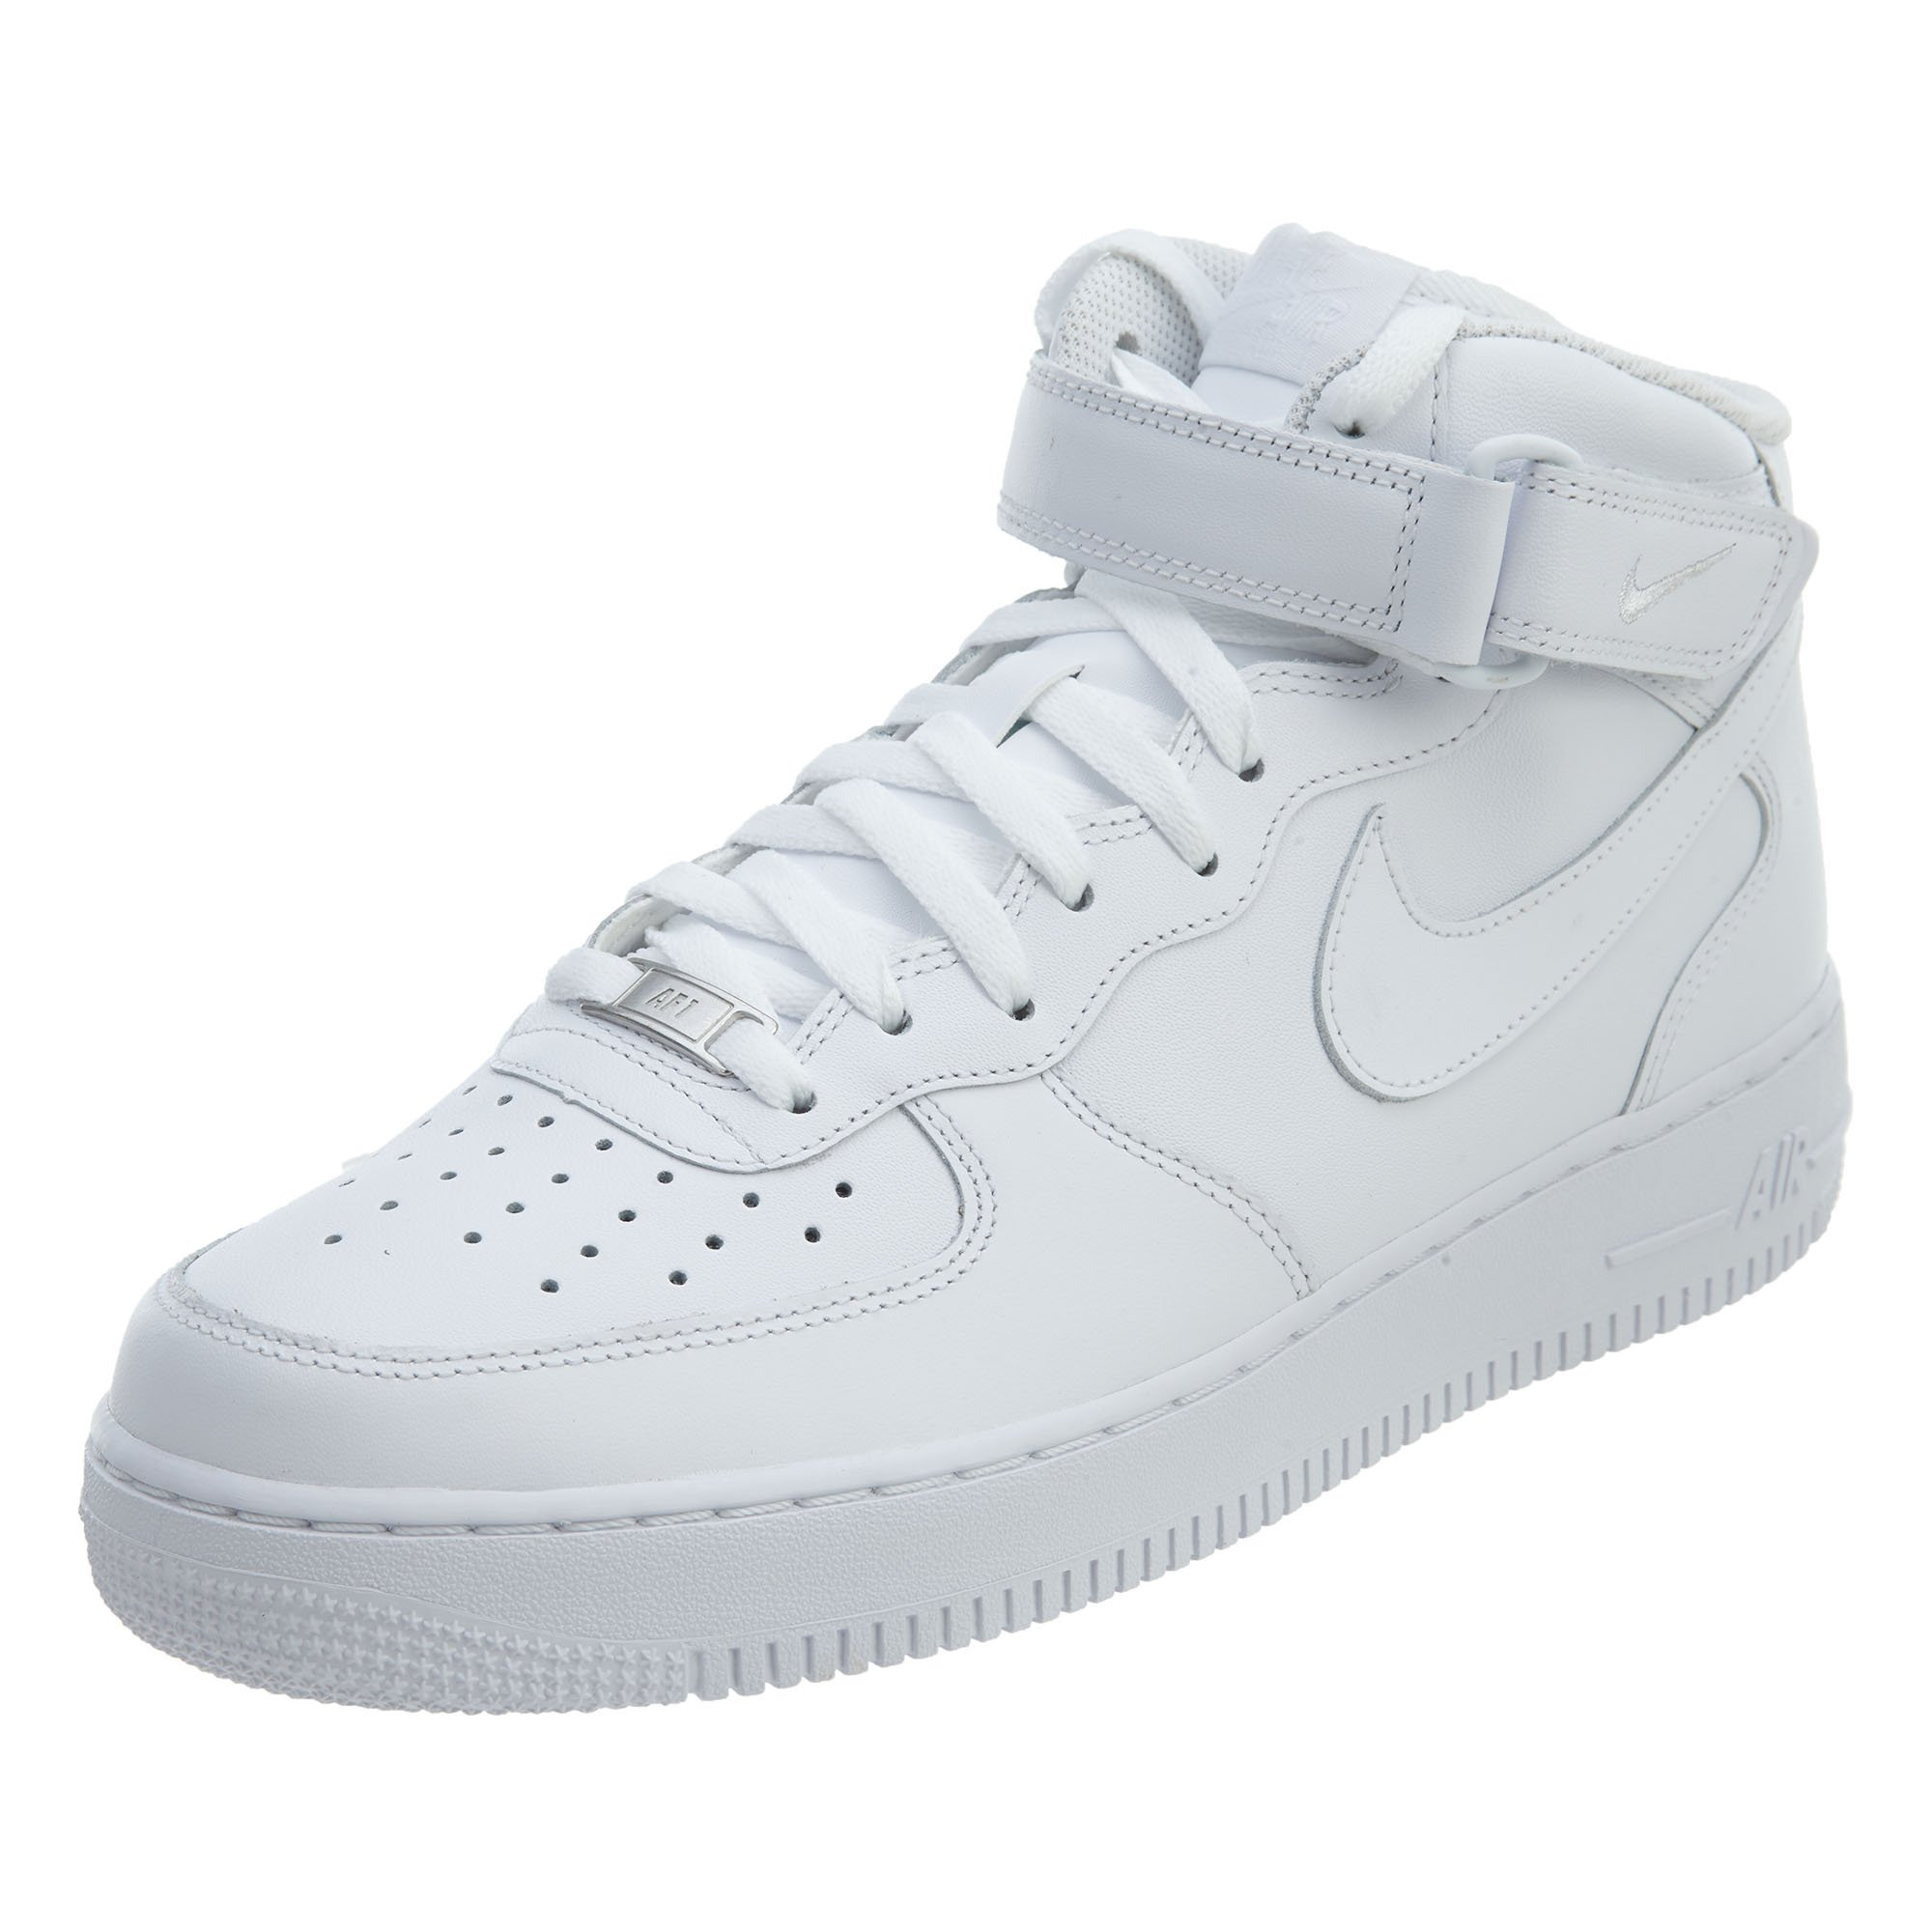 low priced ef6d8 191bb Galleon - Nike Men s Air Force 1 Mid 07 Basketball Sneakers White Size 13 D  (US)